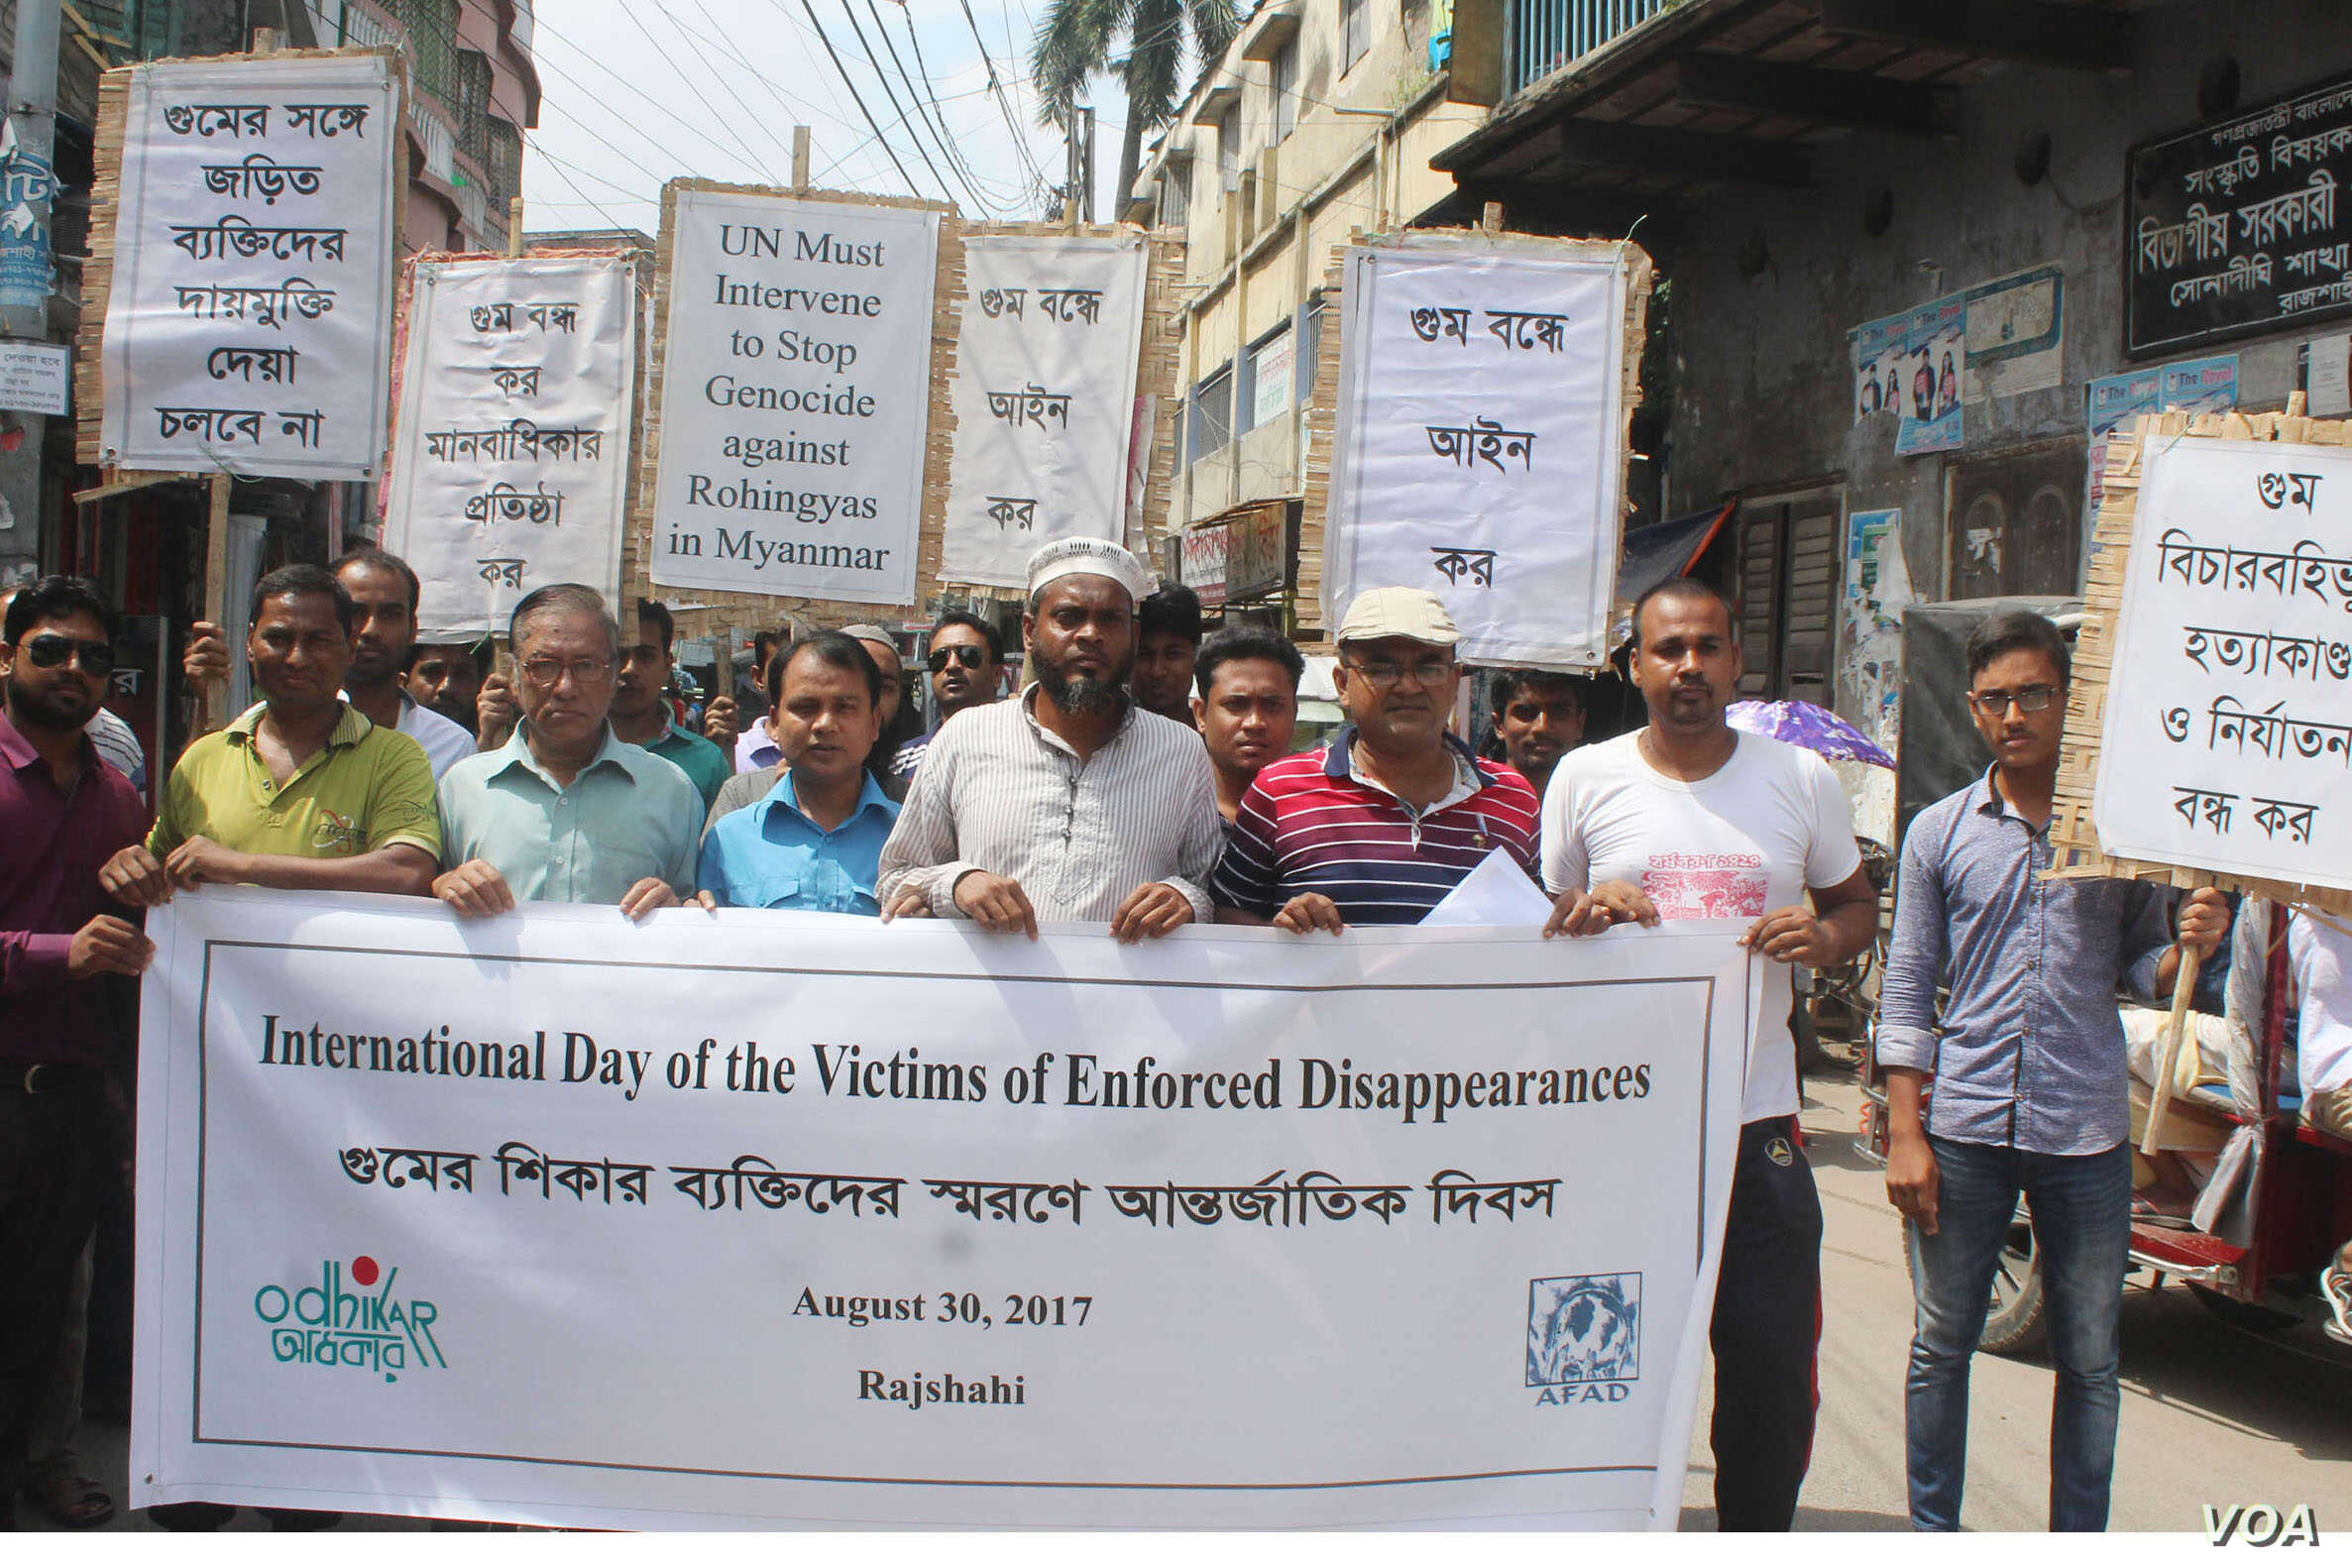 Bangladeshi human rights group Odhikar activists and volunteers demonstrating against rising cases of enforced disappearance in the country on the International Day of the Victims of Enforced Disappearances in Rajshahi, Bangladesh (30 August 2017).